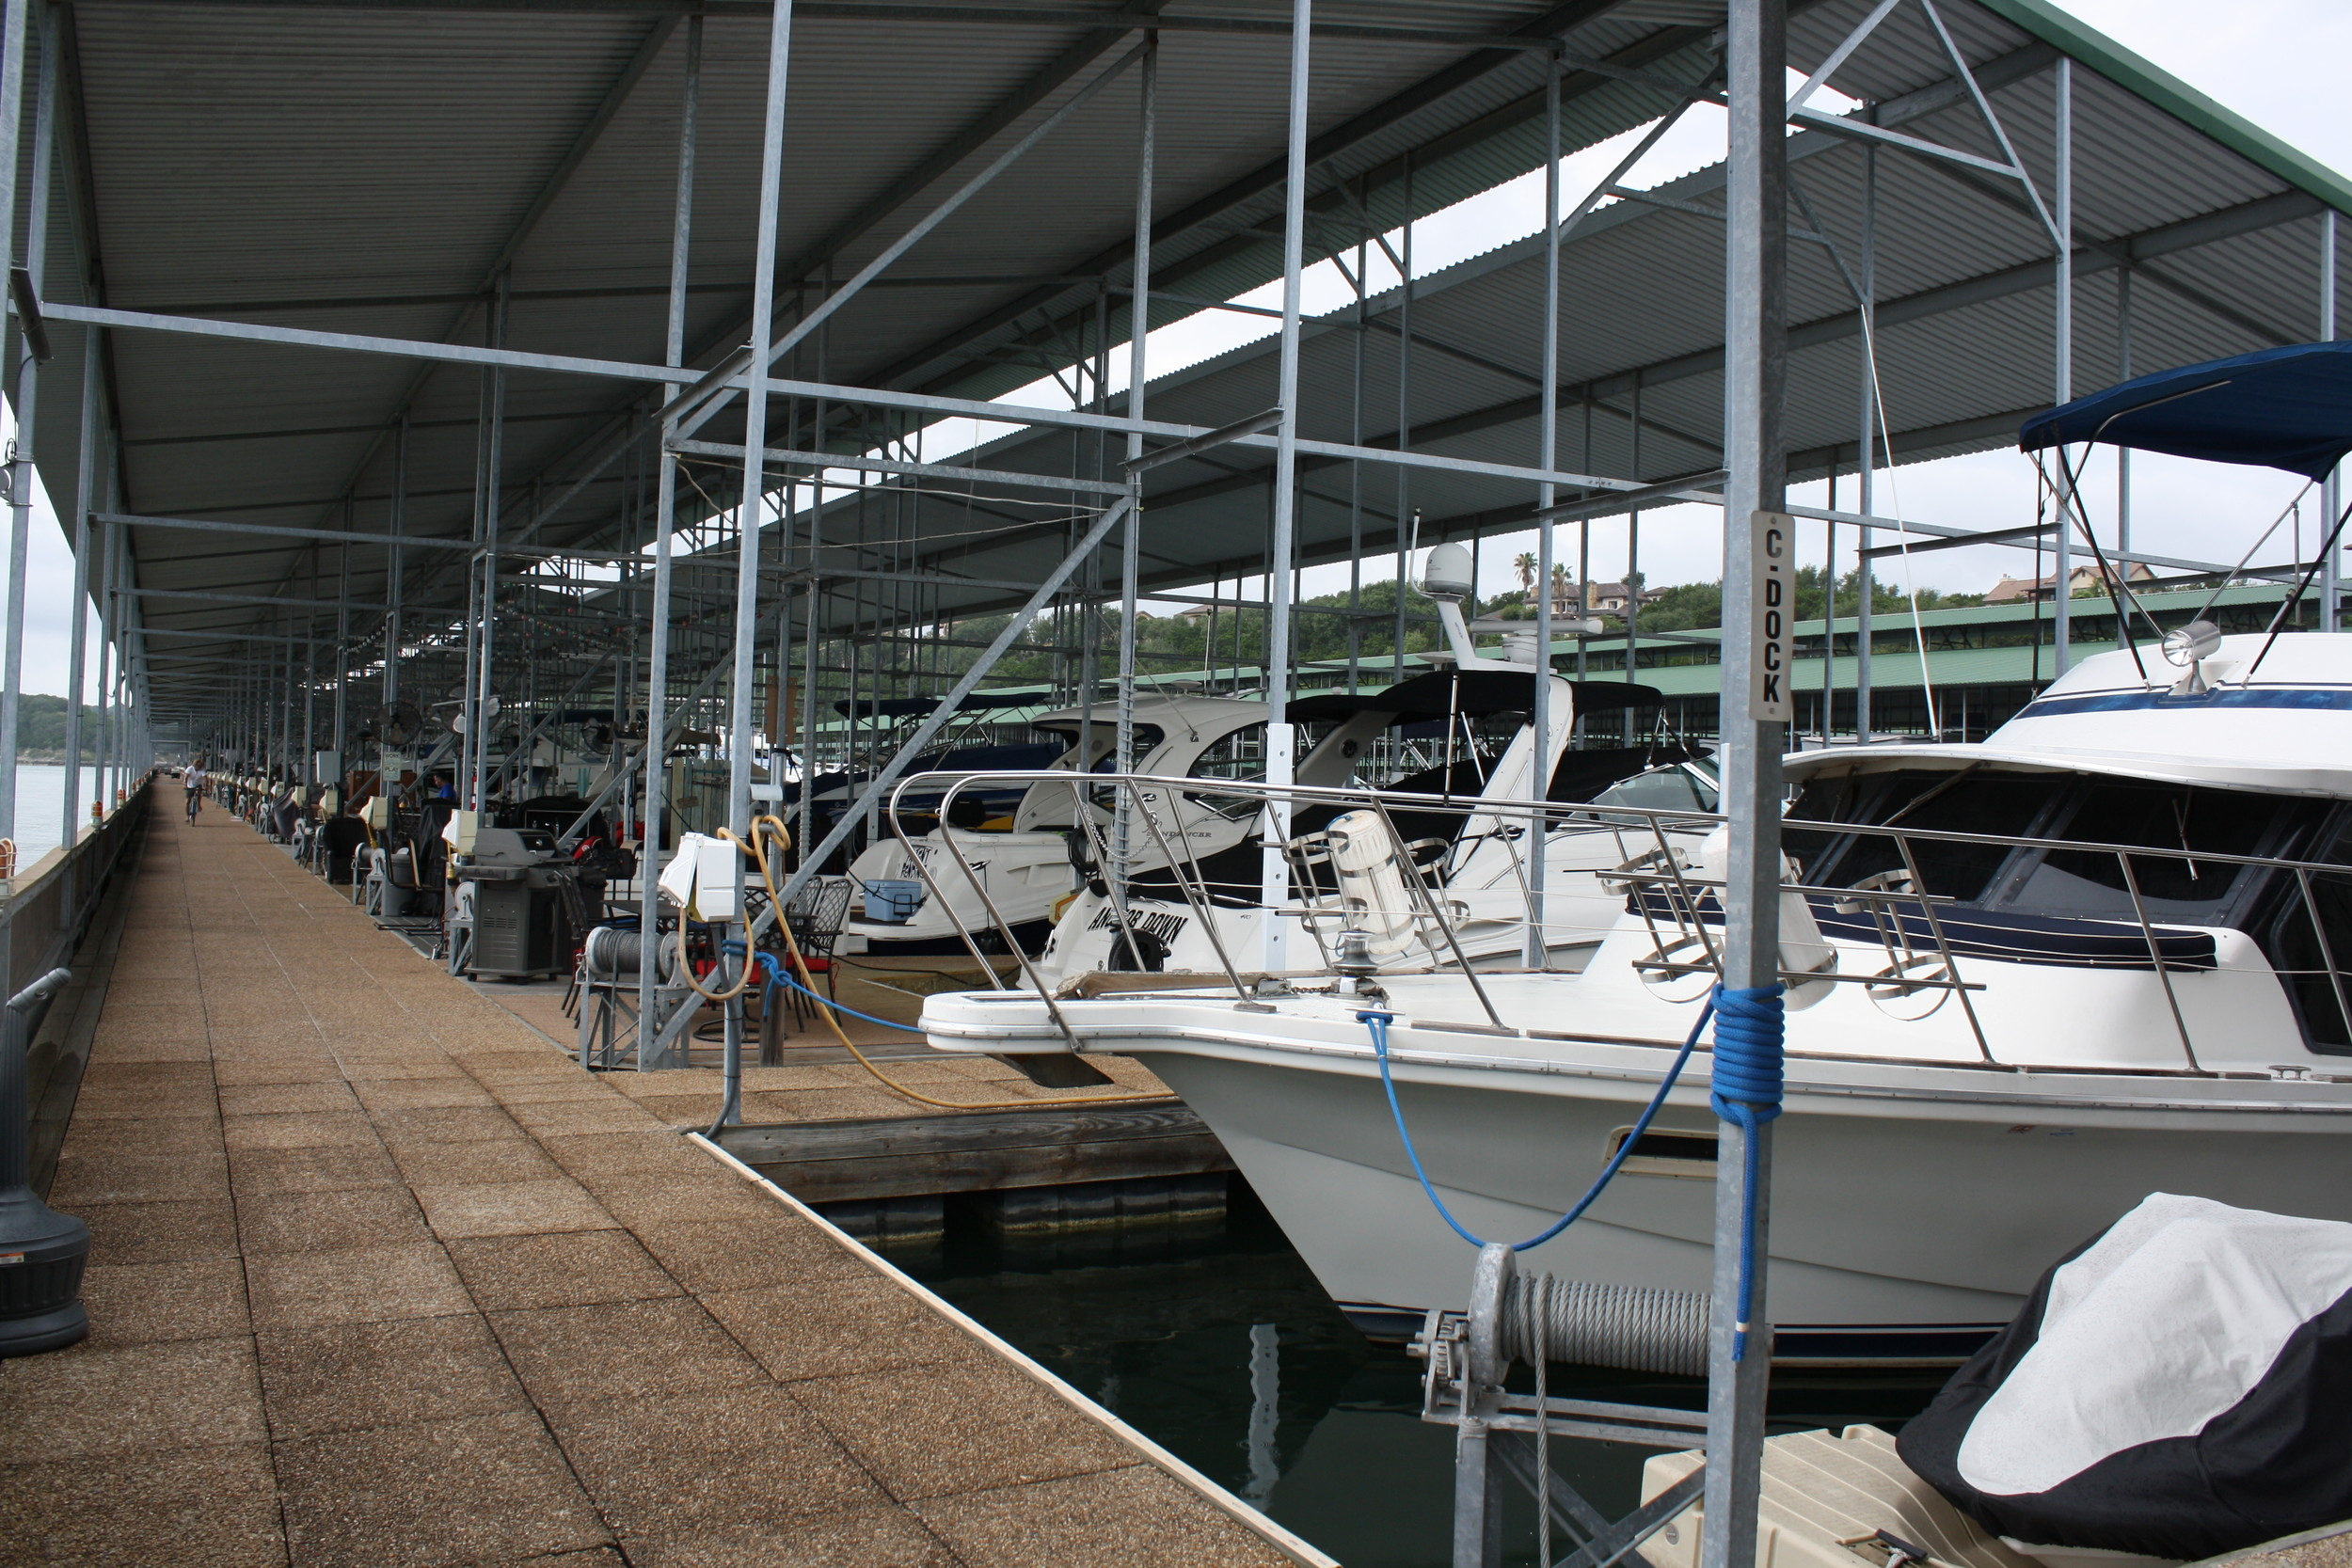 NorthShore Marina upgraded its amount of boat slips from 197 to 268 with two new docks. The marina offers large boat slips that are 80 by 20 feet wide, the largest on Lake Travis.